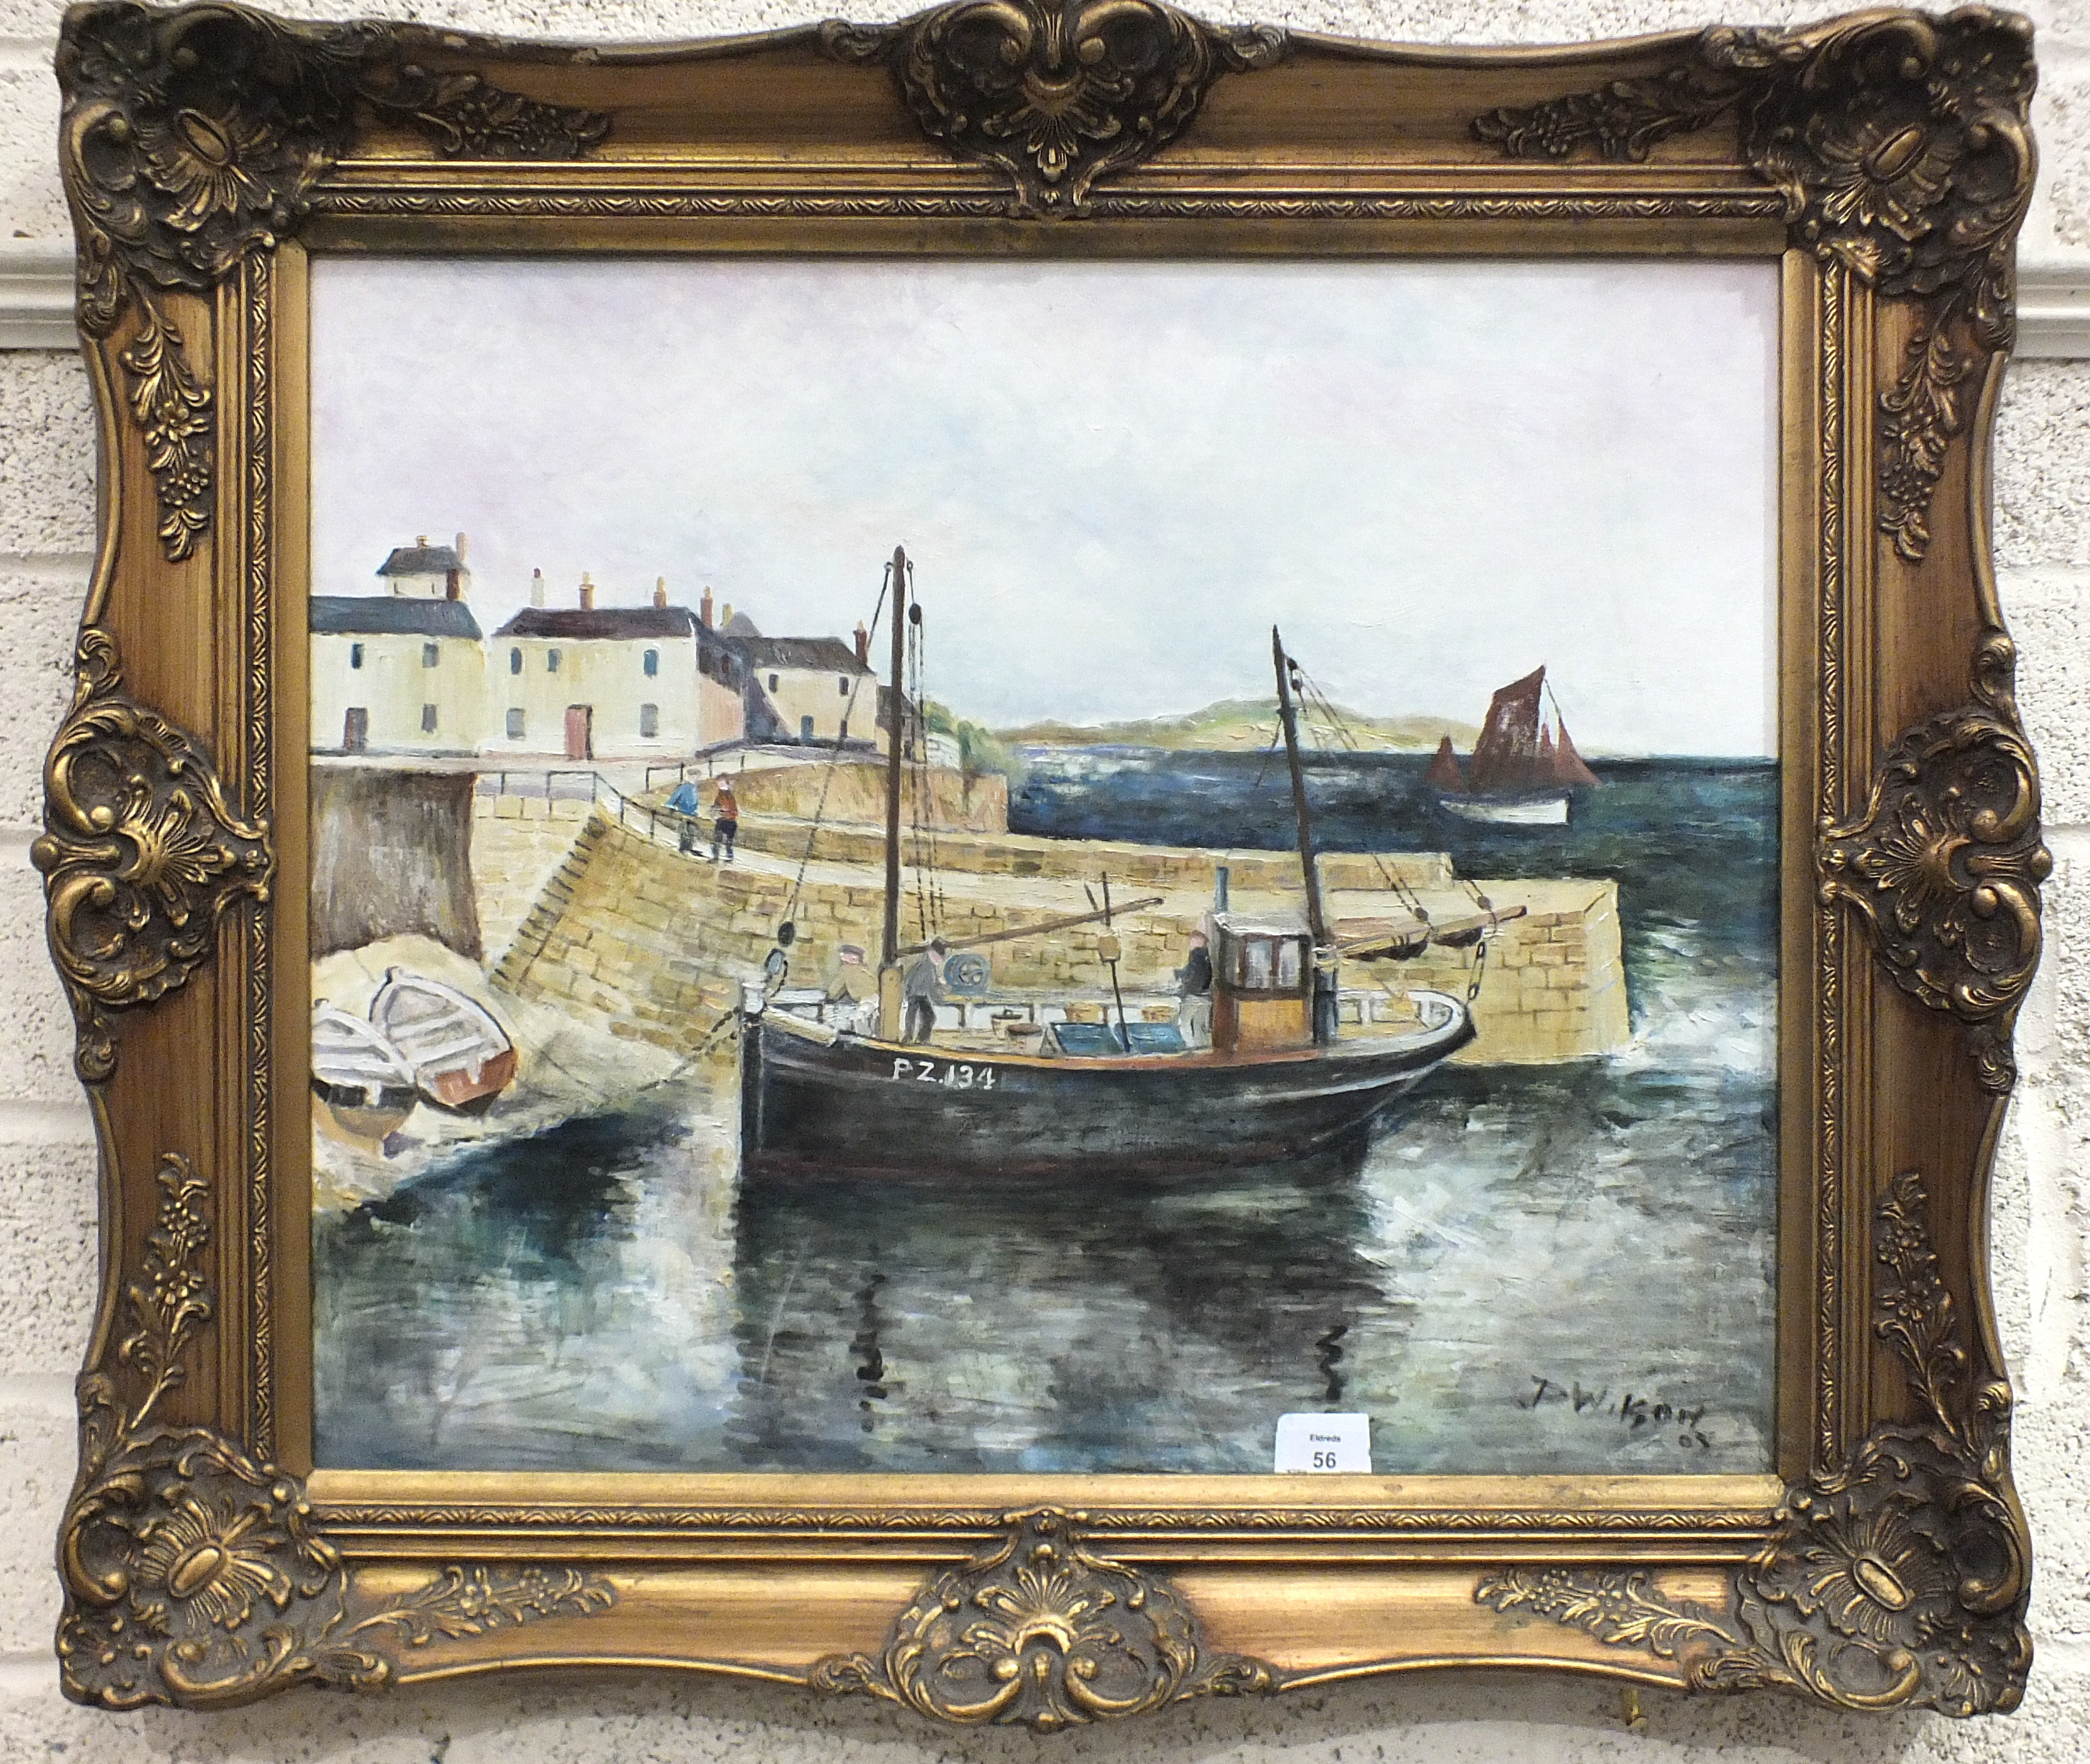 Lot 42 - Derek Wilson, 'Penzance trawler moored to quayside', oil on board, signed and dated '05, 50 x 60cm.